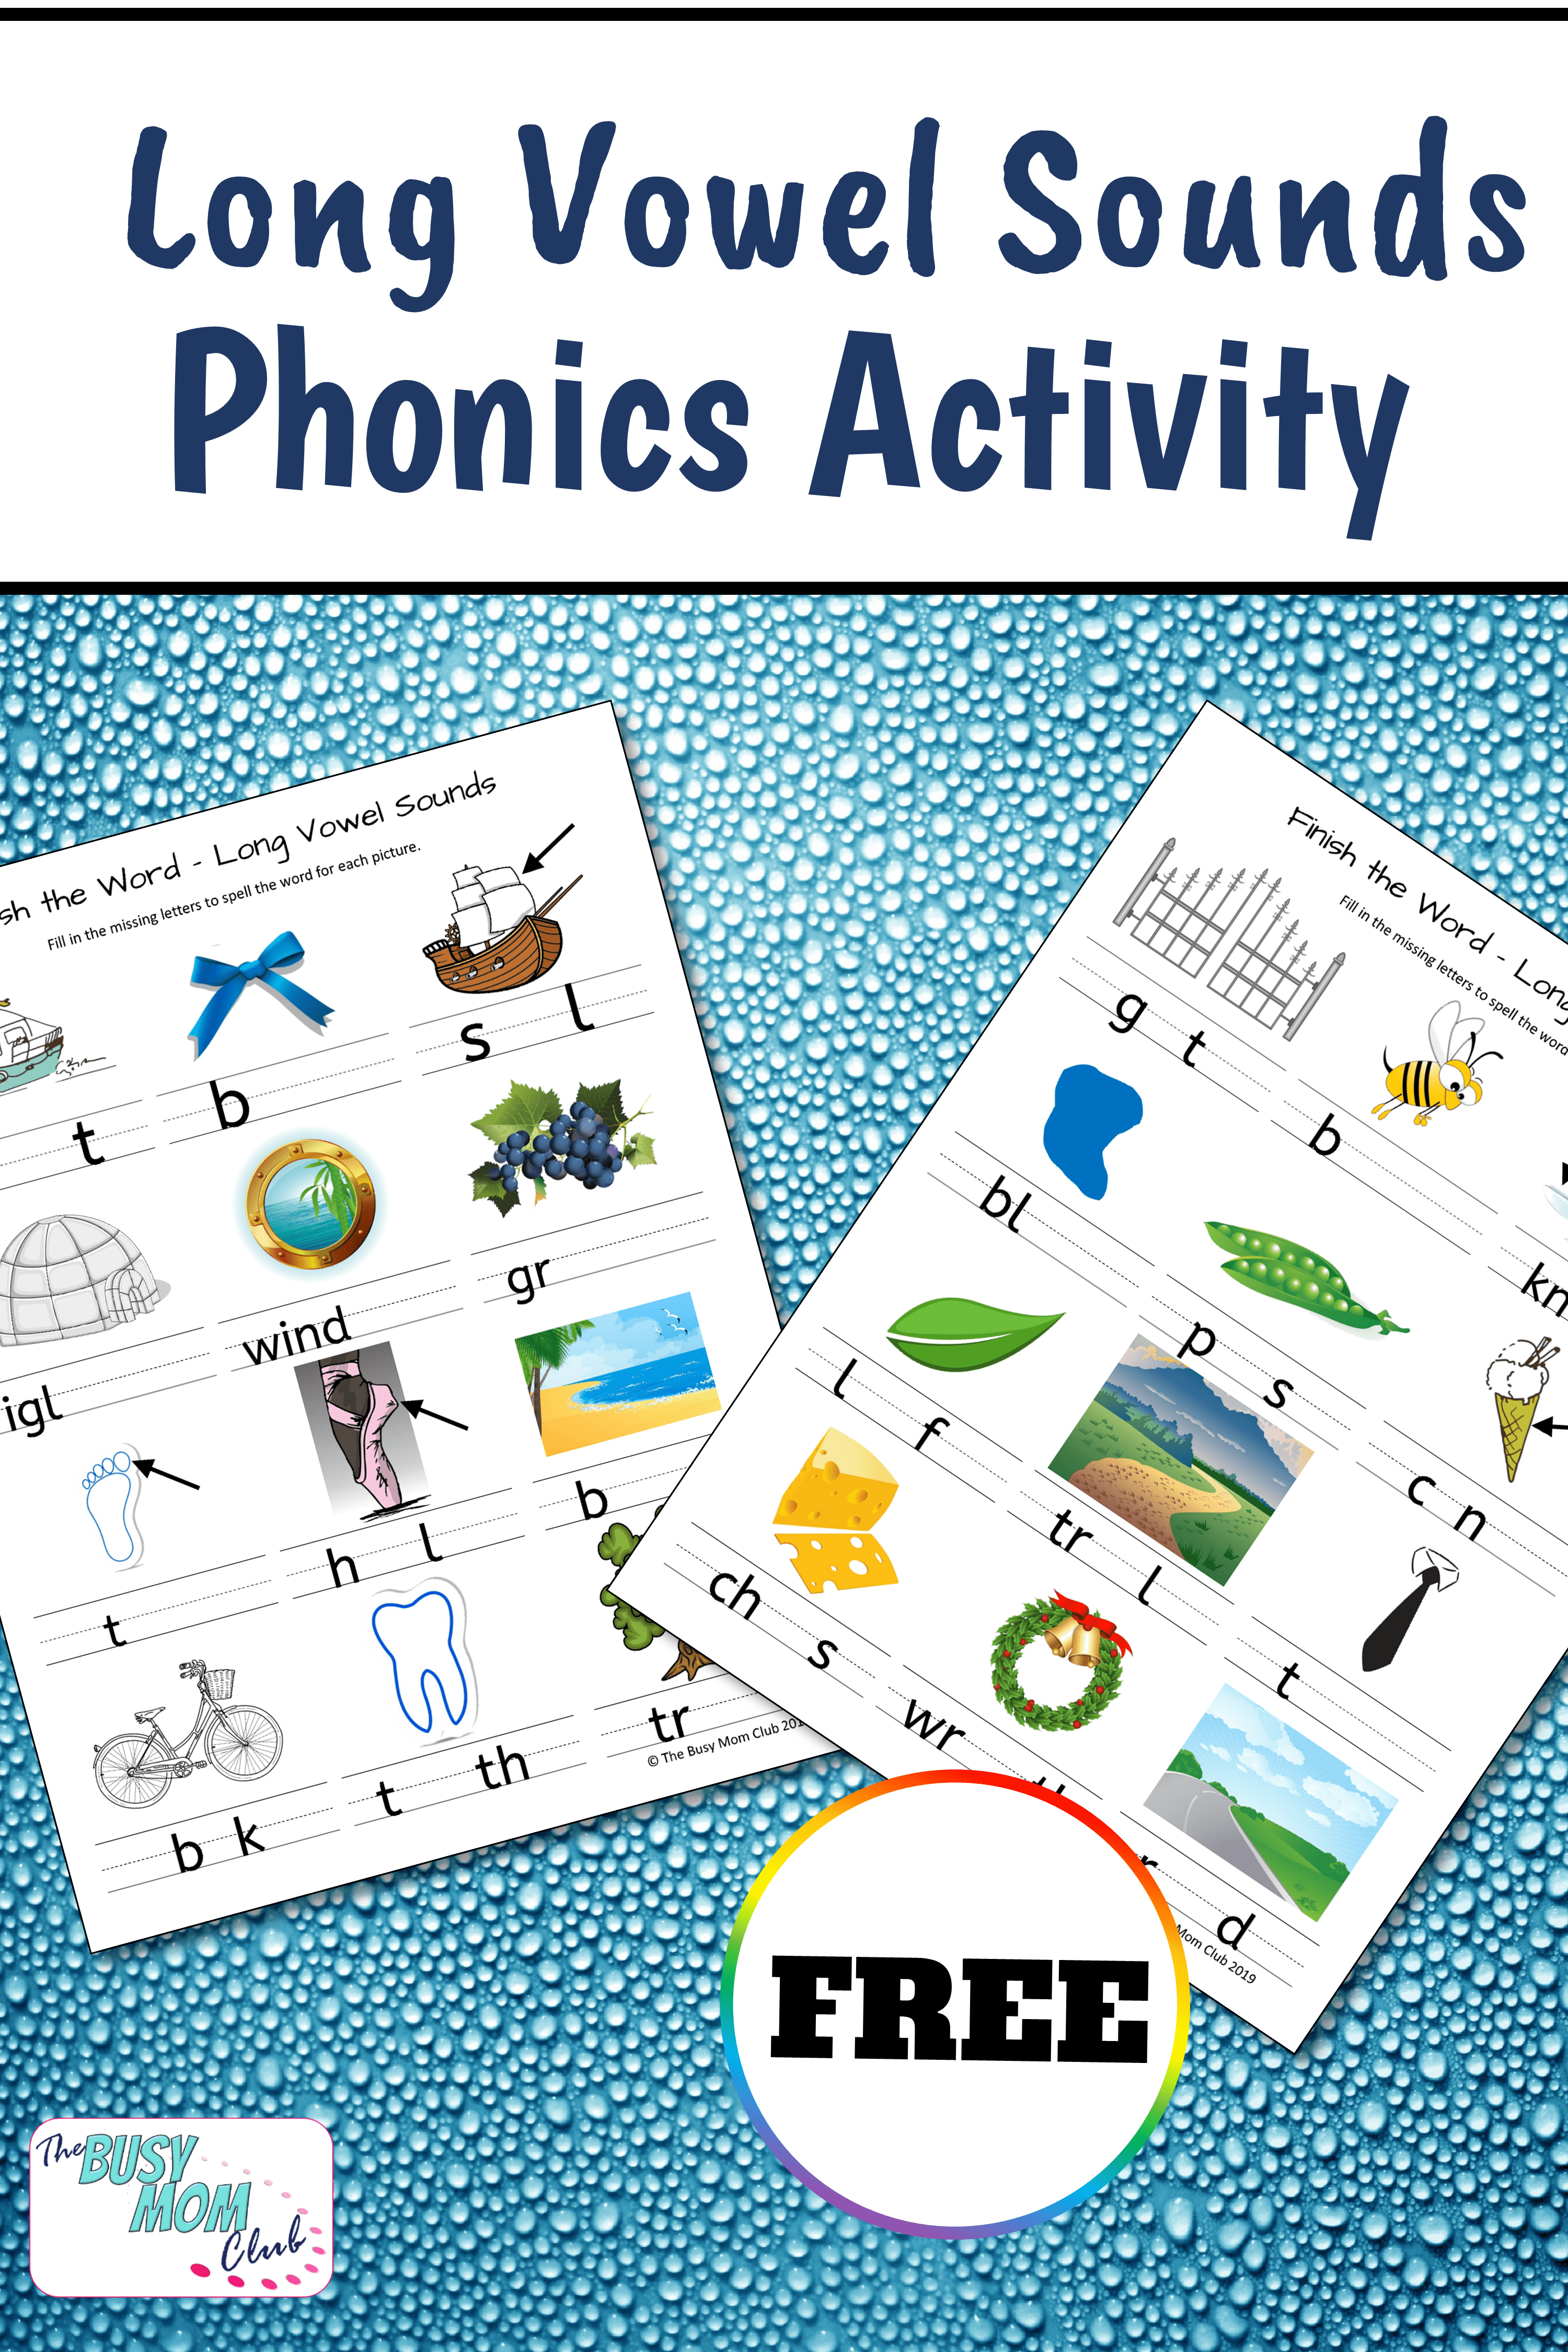 Ideas And Activities For Teaching Long Vowel Sounds